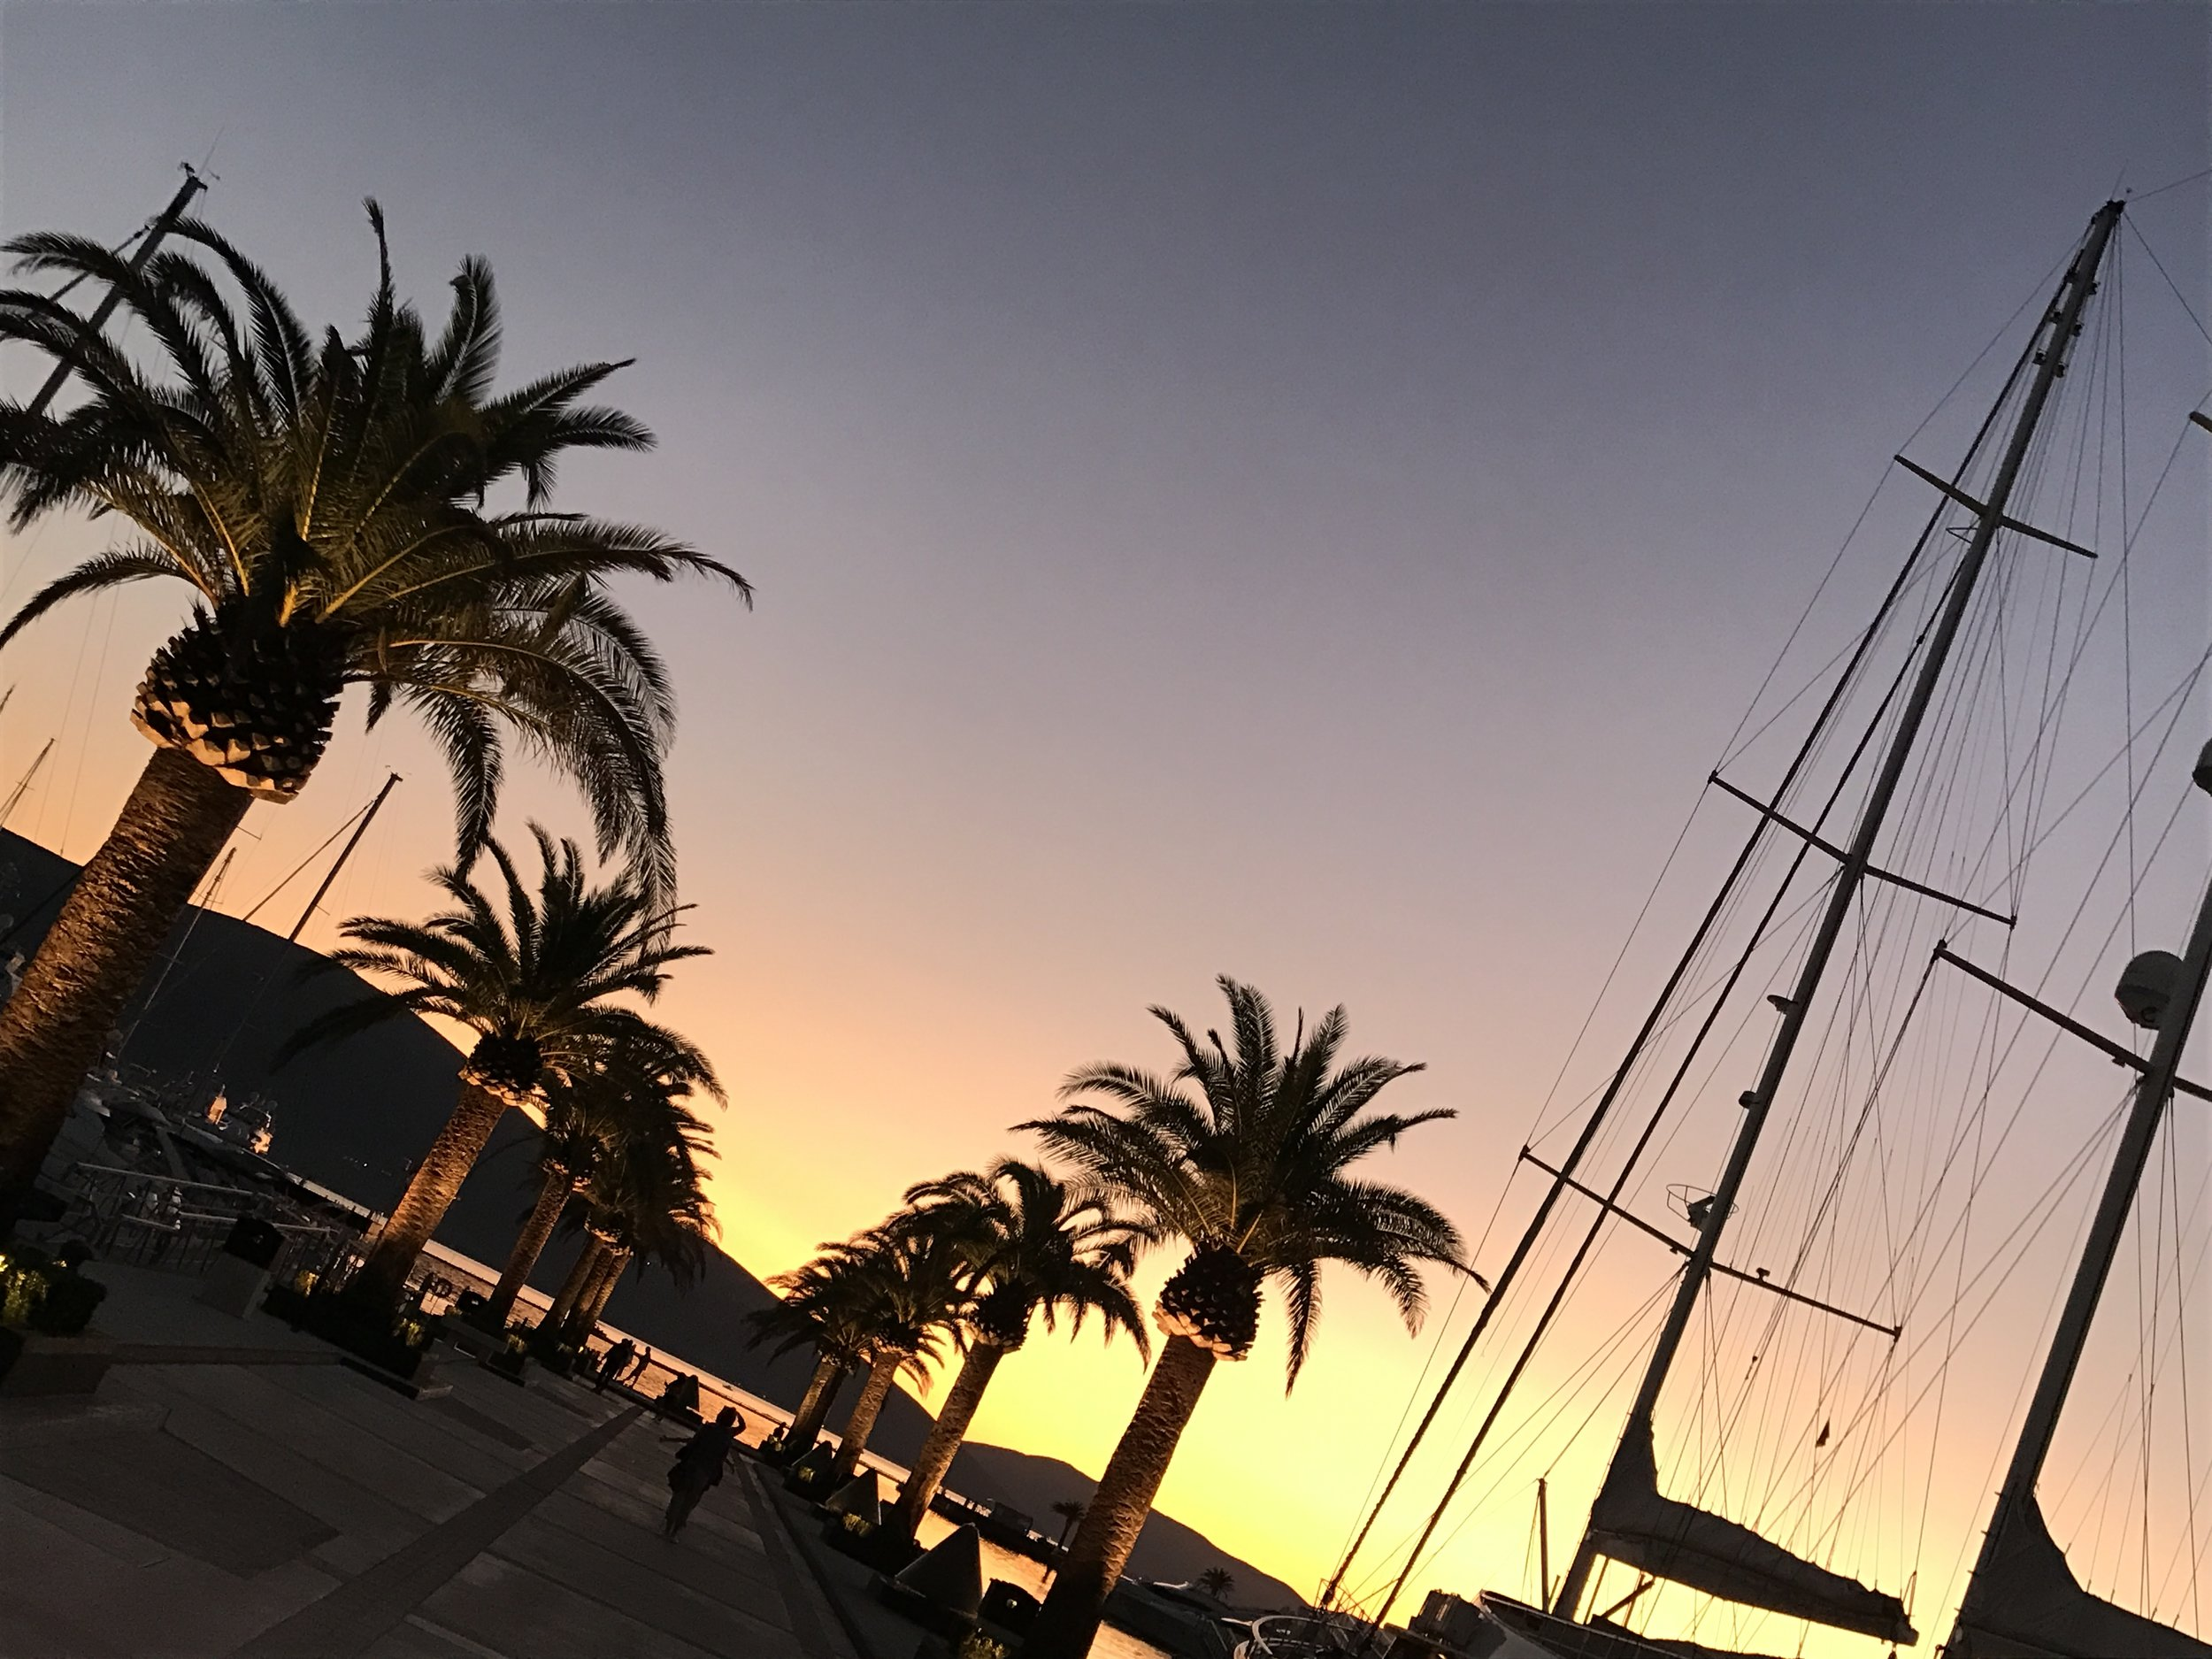 A stunning sunset at Tivat's Porto Montenegro.